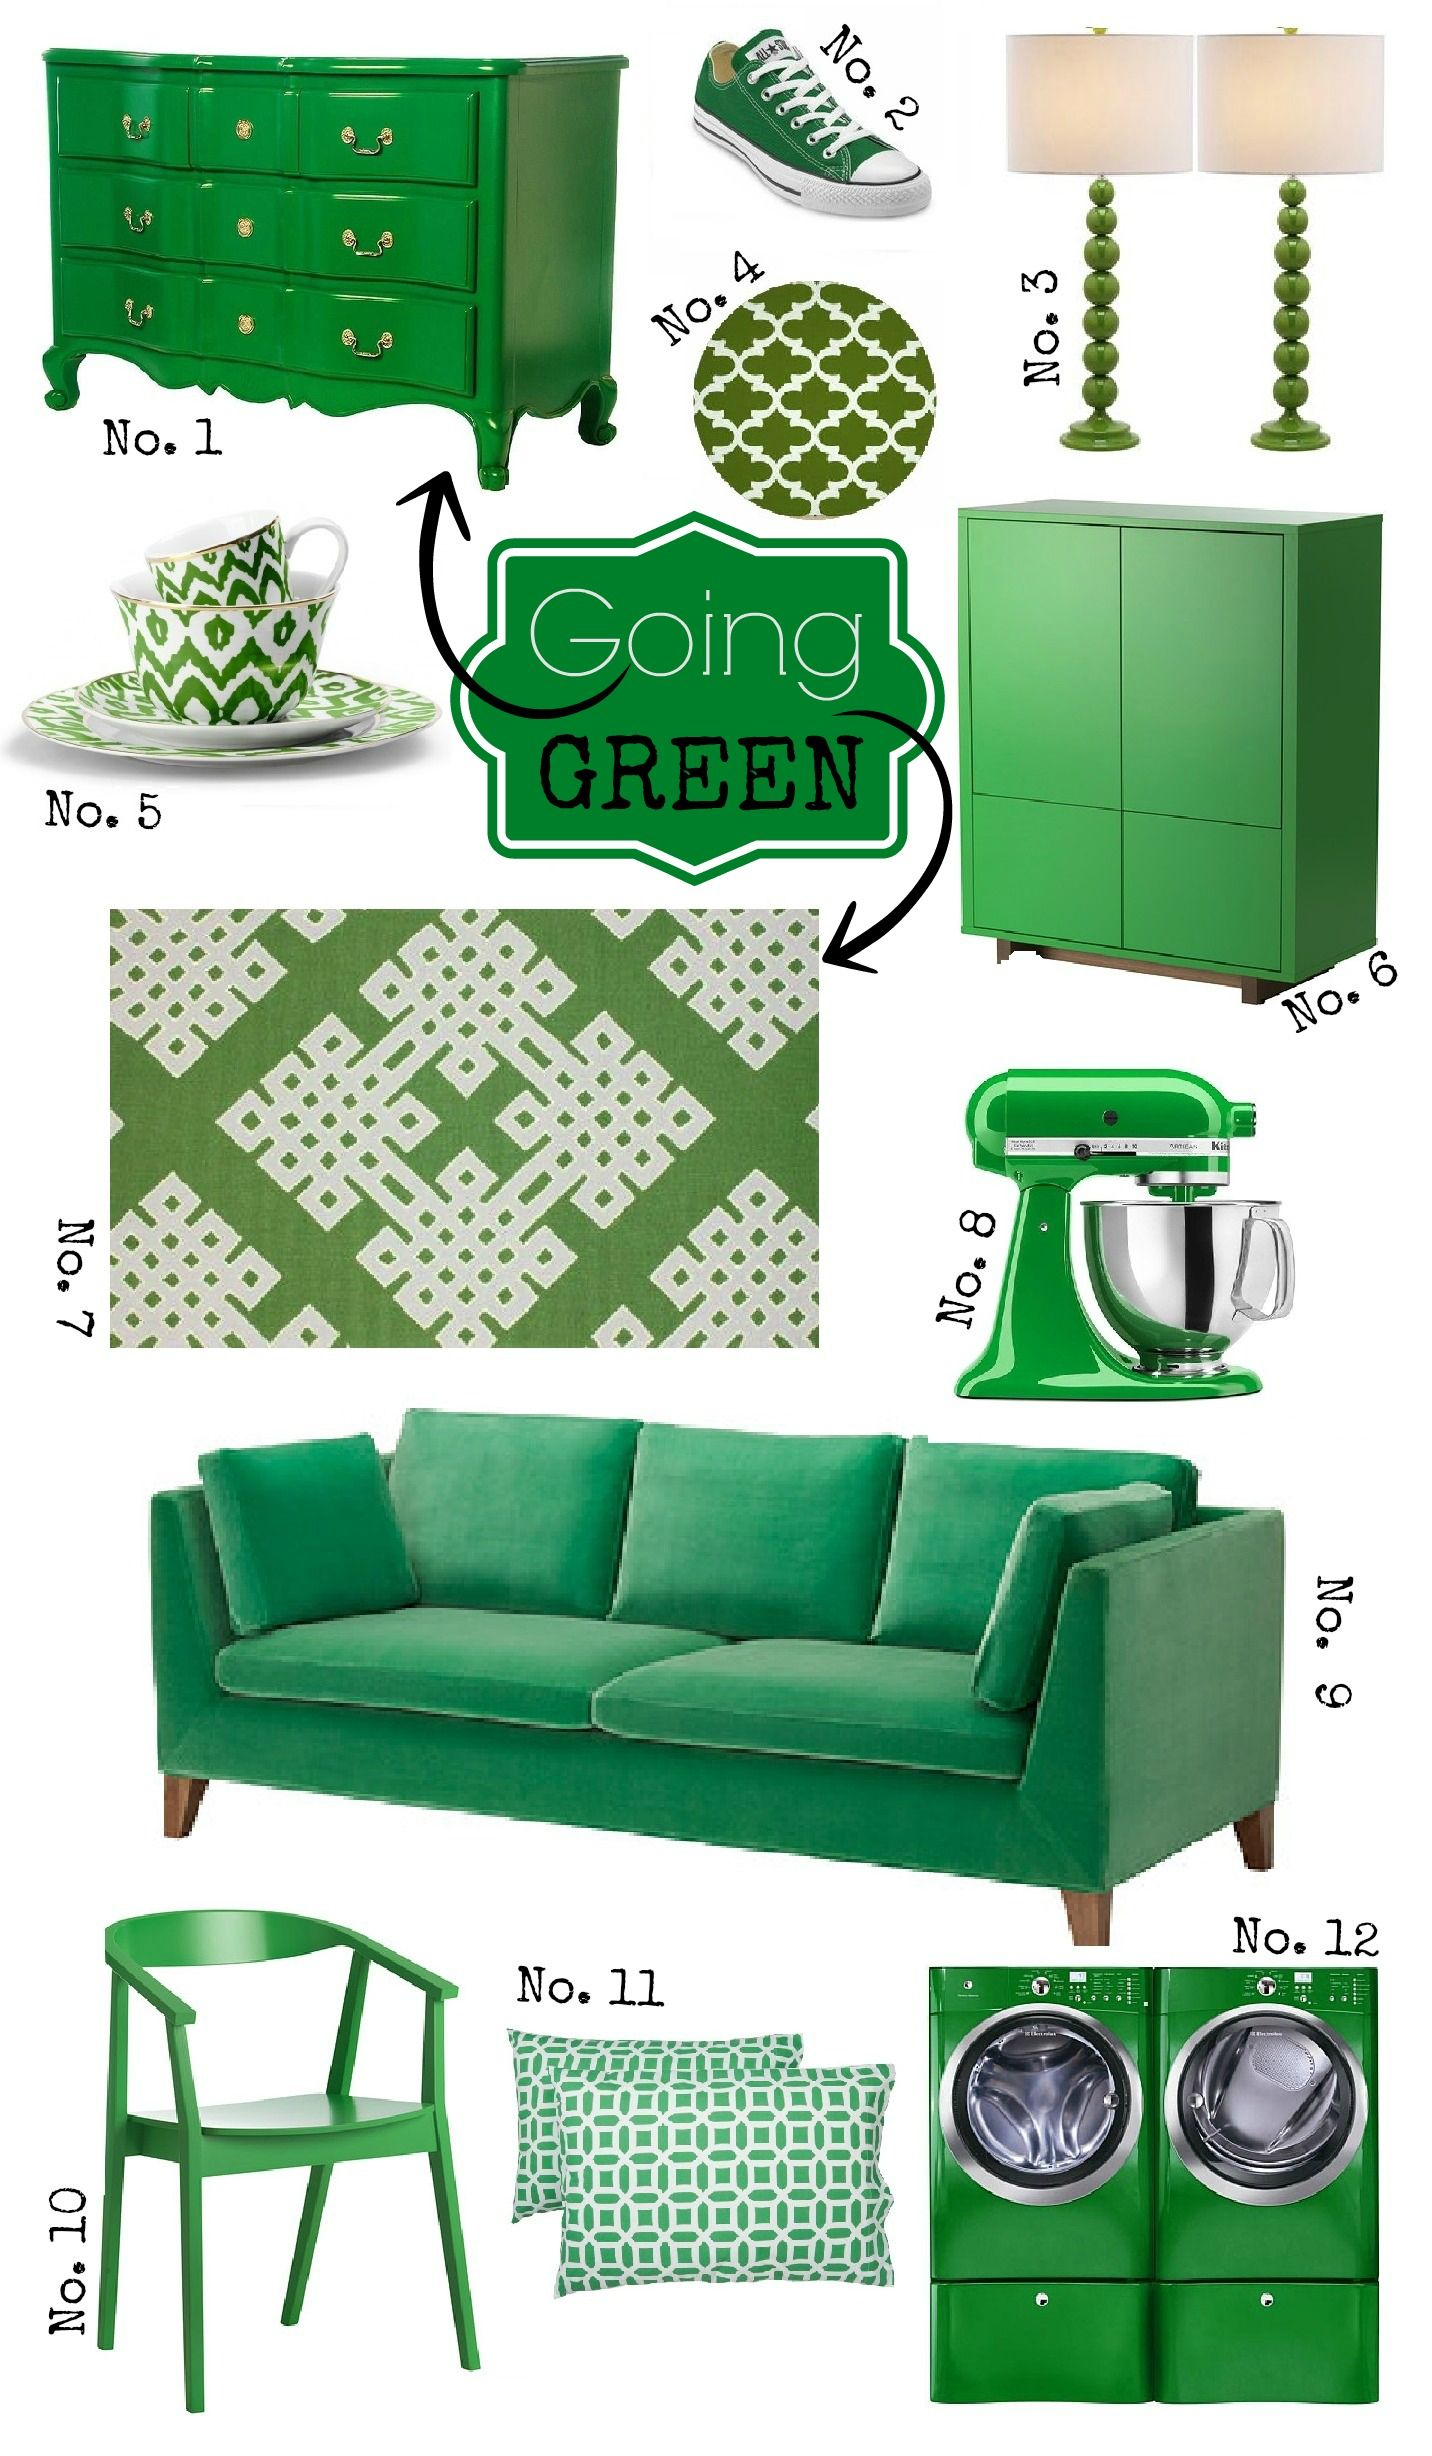 Going Green With Kelly Green Decor Green Painted Furniture Green Decor Green Home Decor